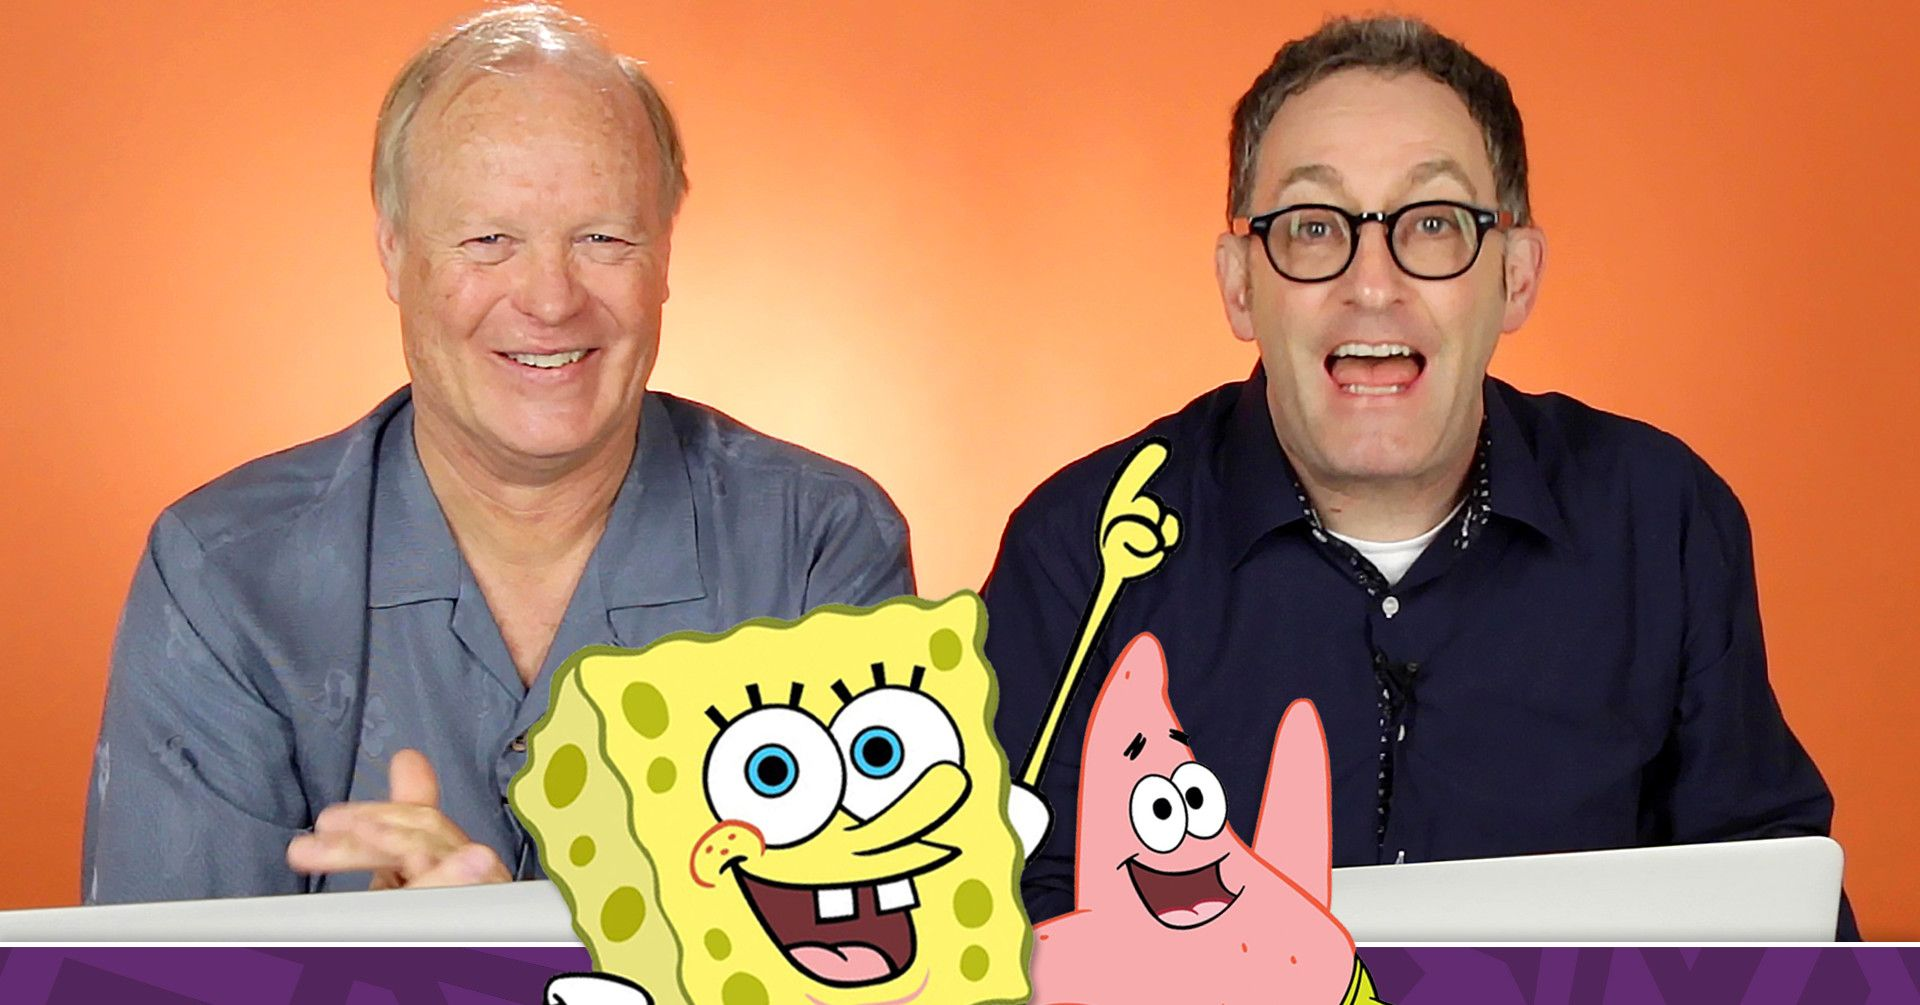 Tom Kenny and Bill Fagerbakke, the voices behind main characters